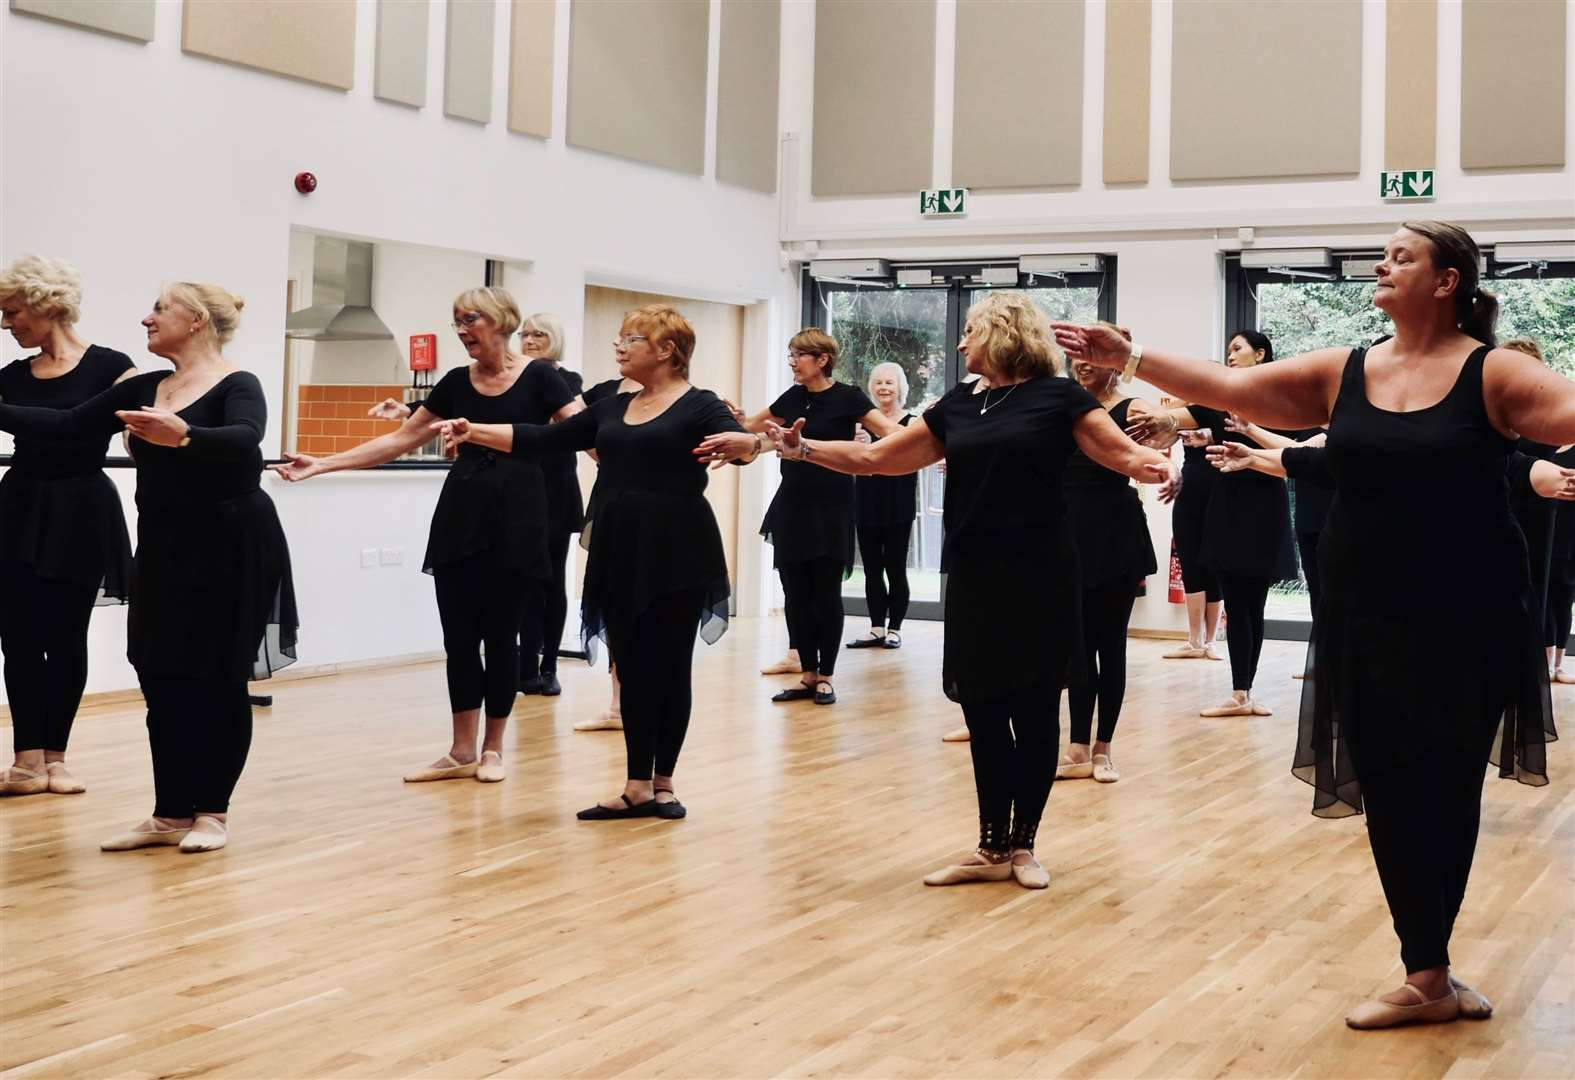 Ballet class will keep over 55s on their toes